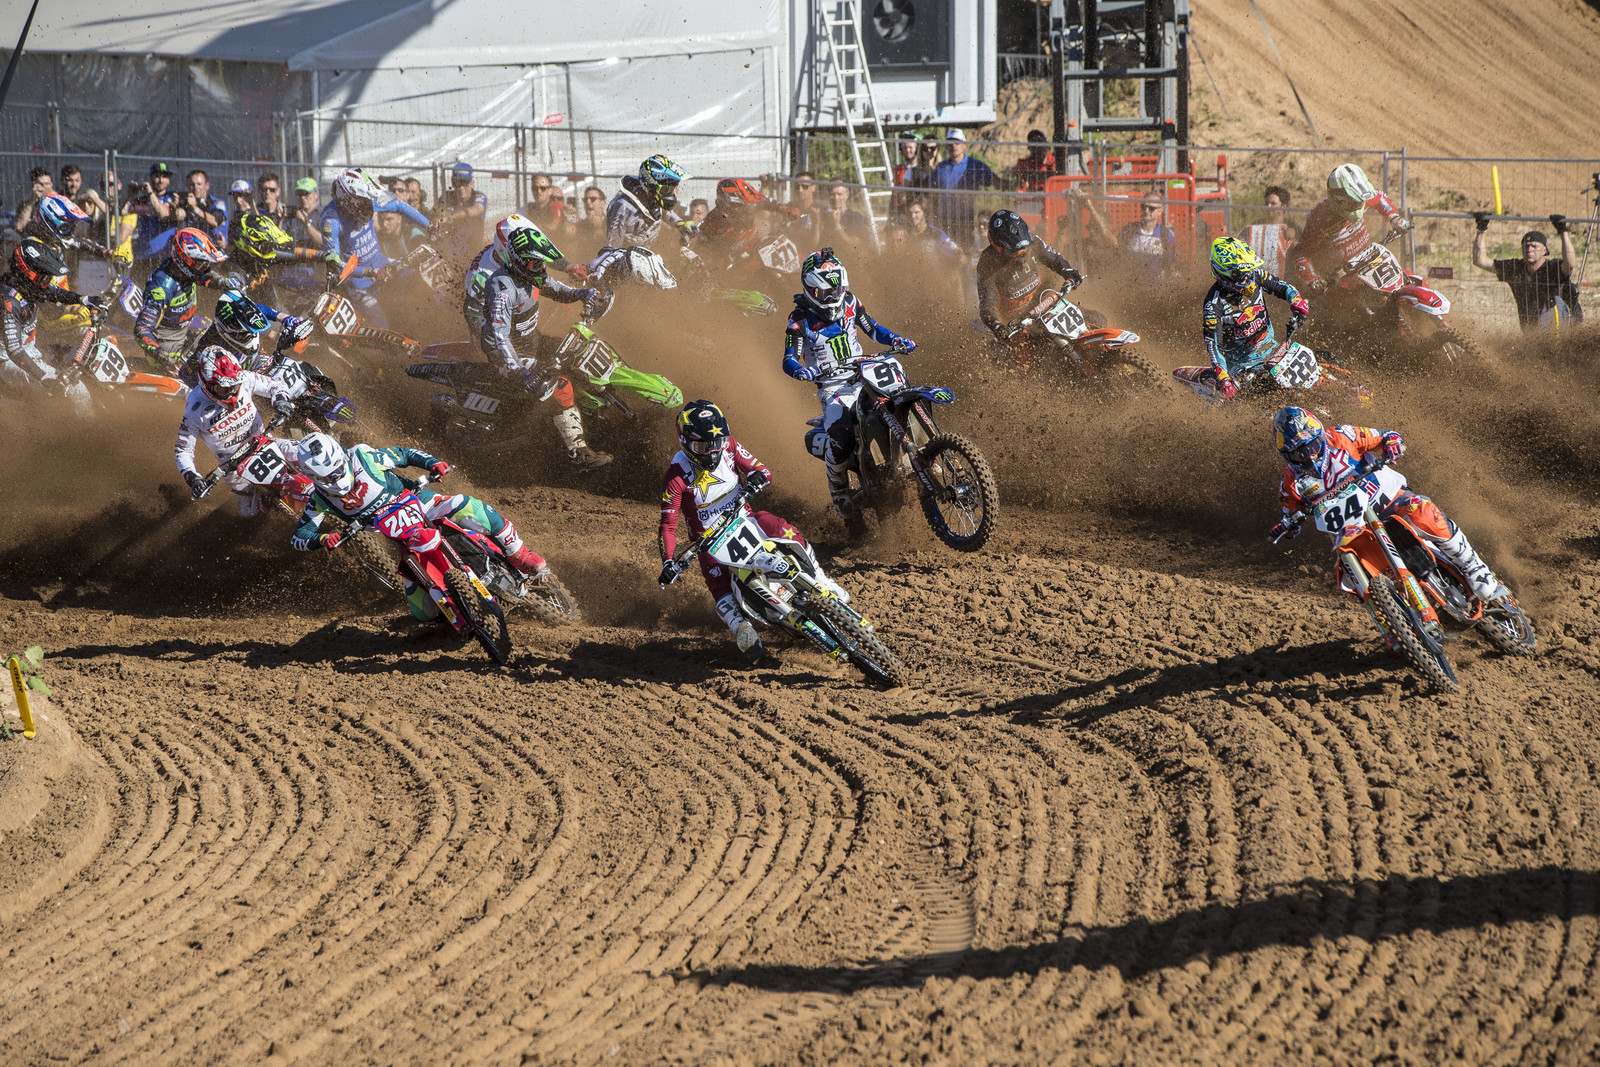 The Latvian MXGP was another pretty sandy track on the international circuit.